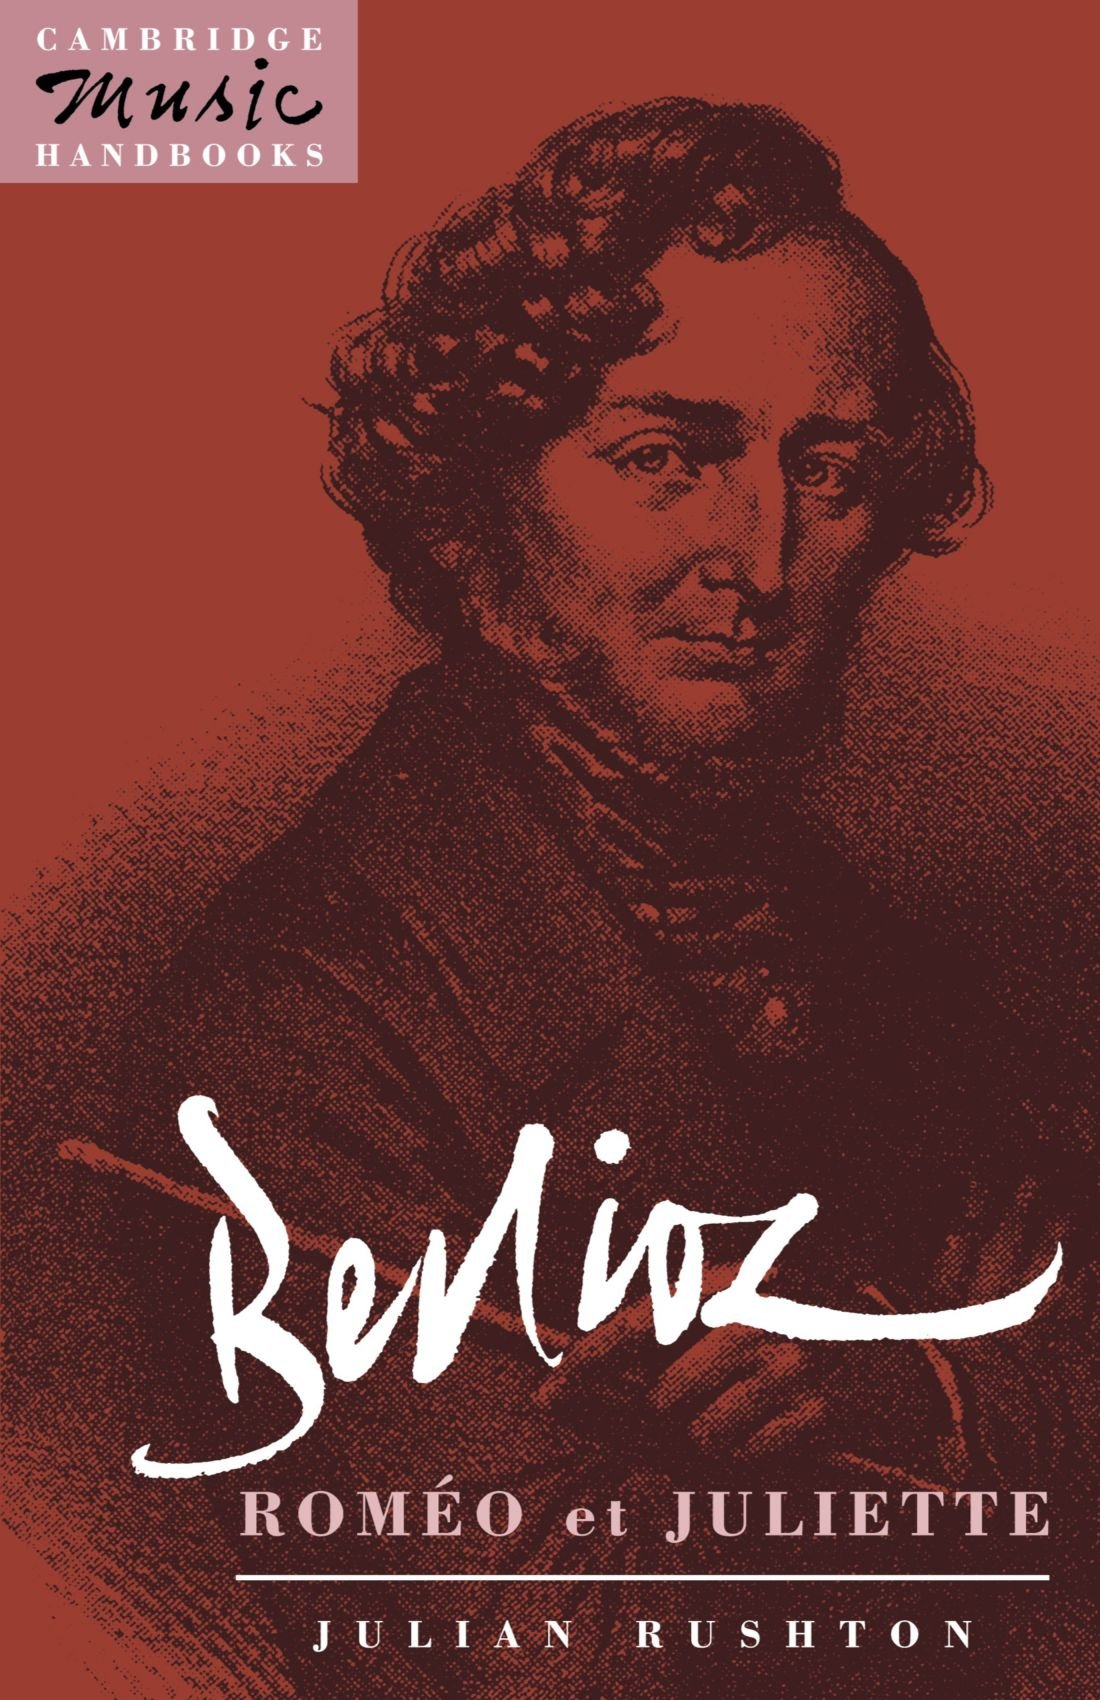 Download Berlioz: Roméo et Juliette (Cambridge Music Handbooks) ebook